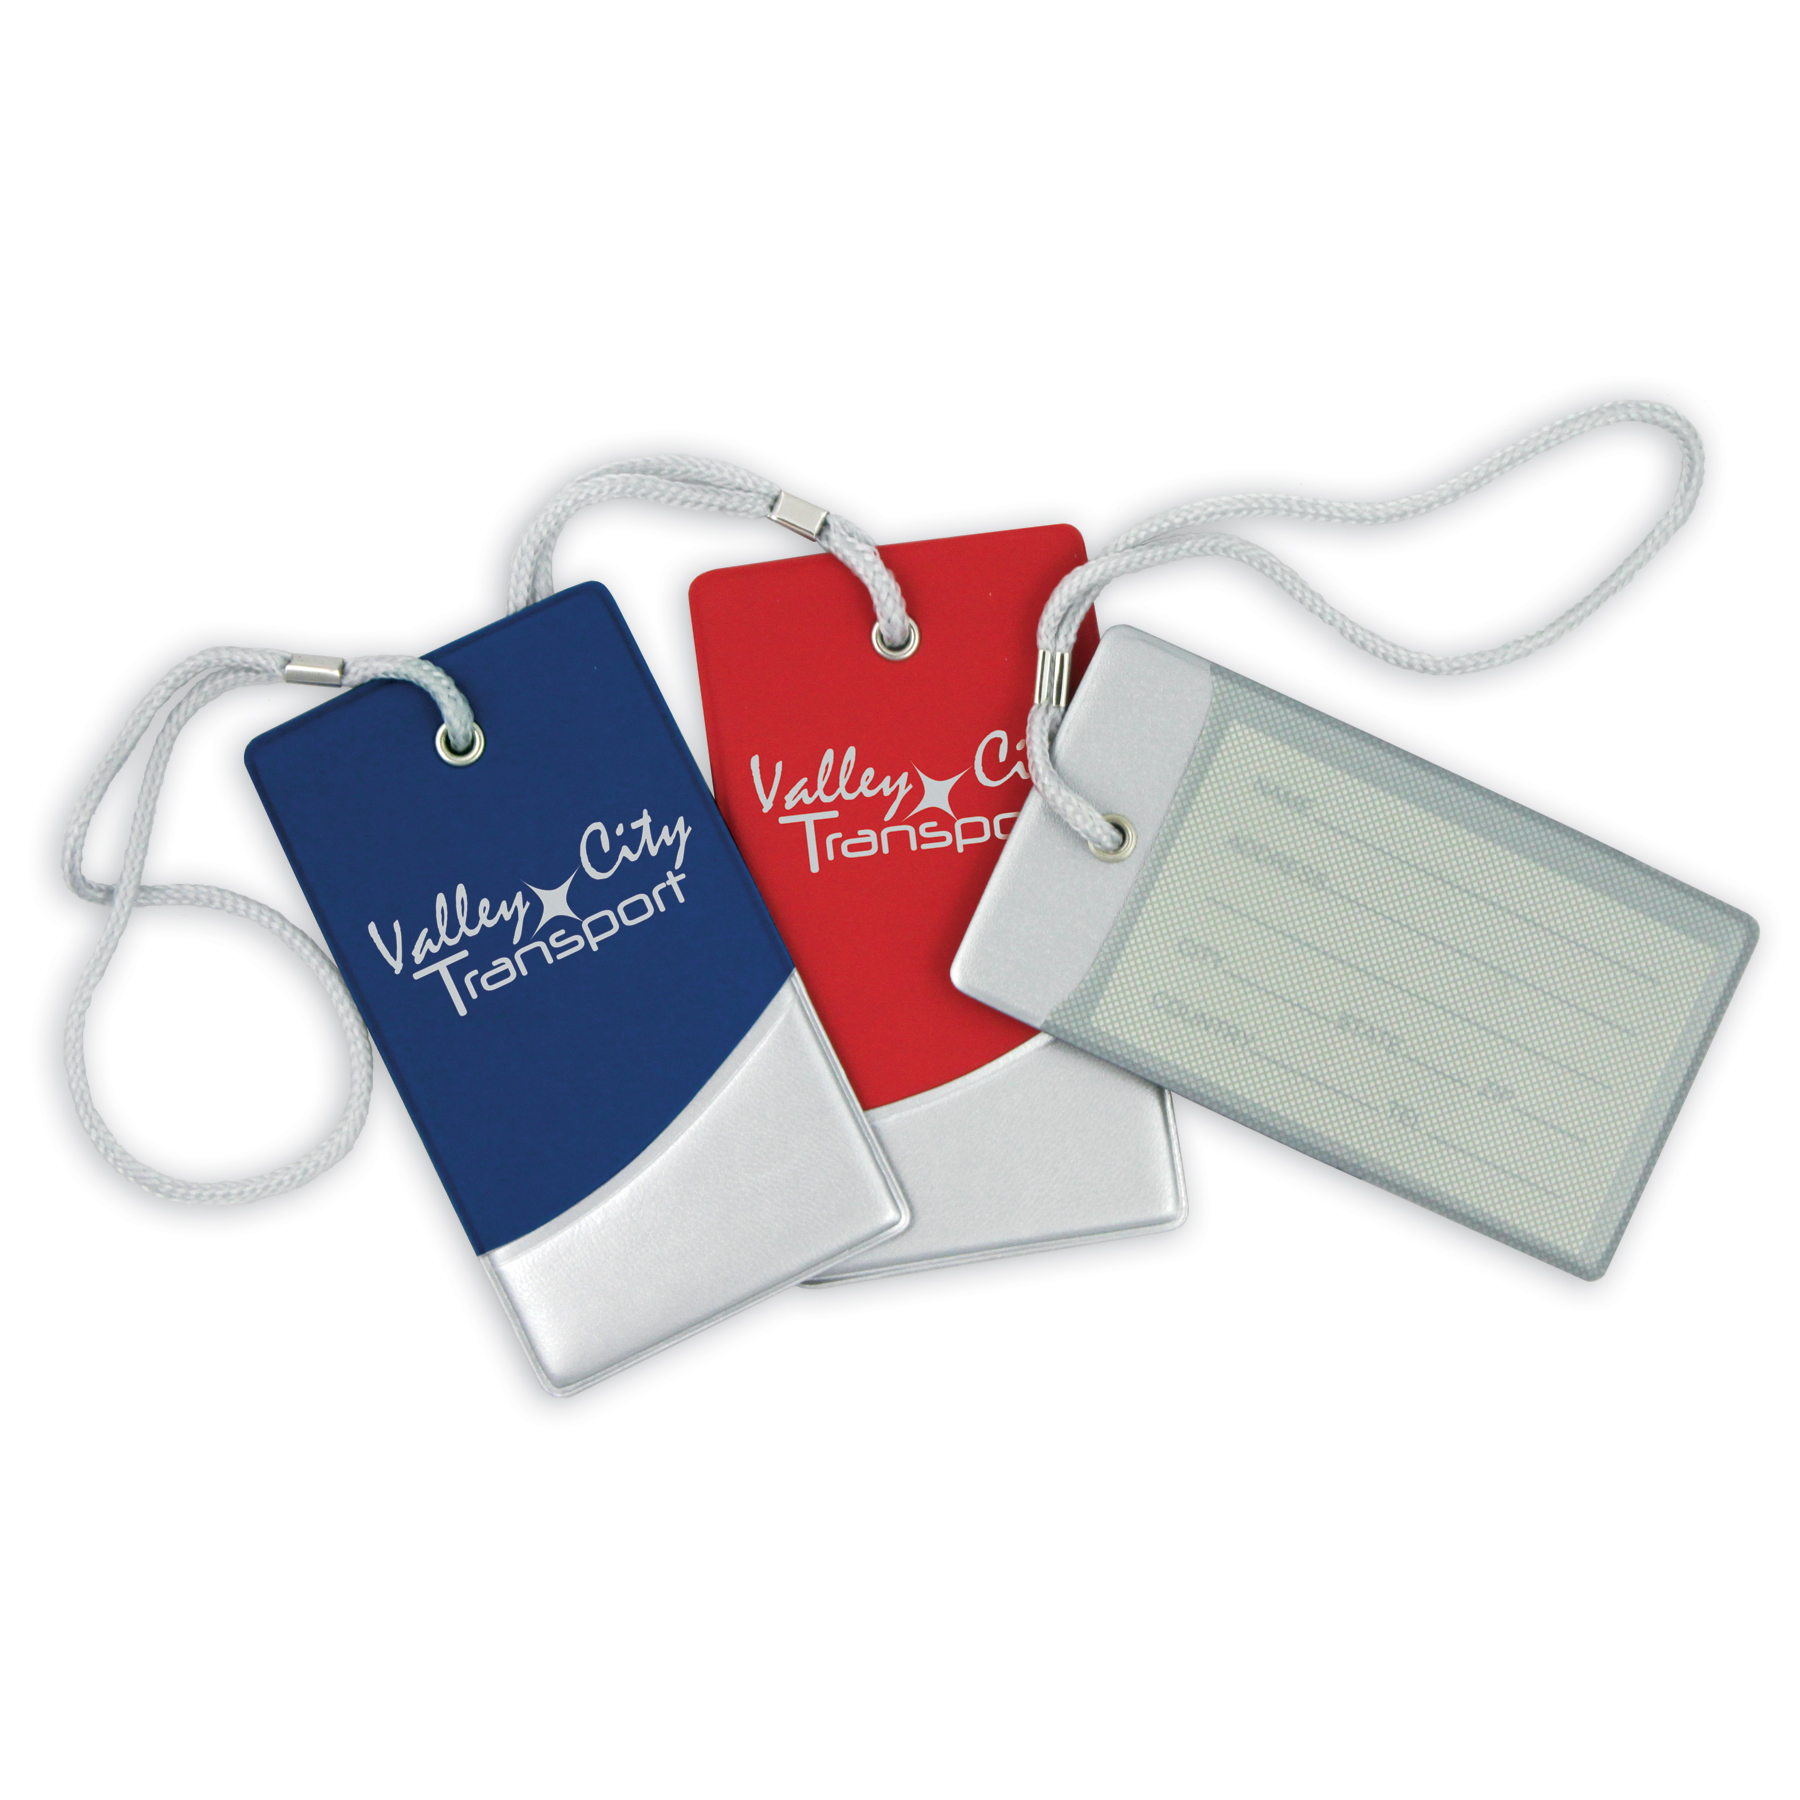 Item: 8075 - Futurity Luggage Tag